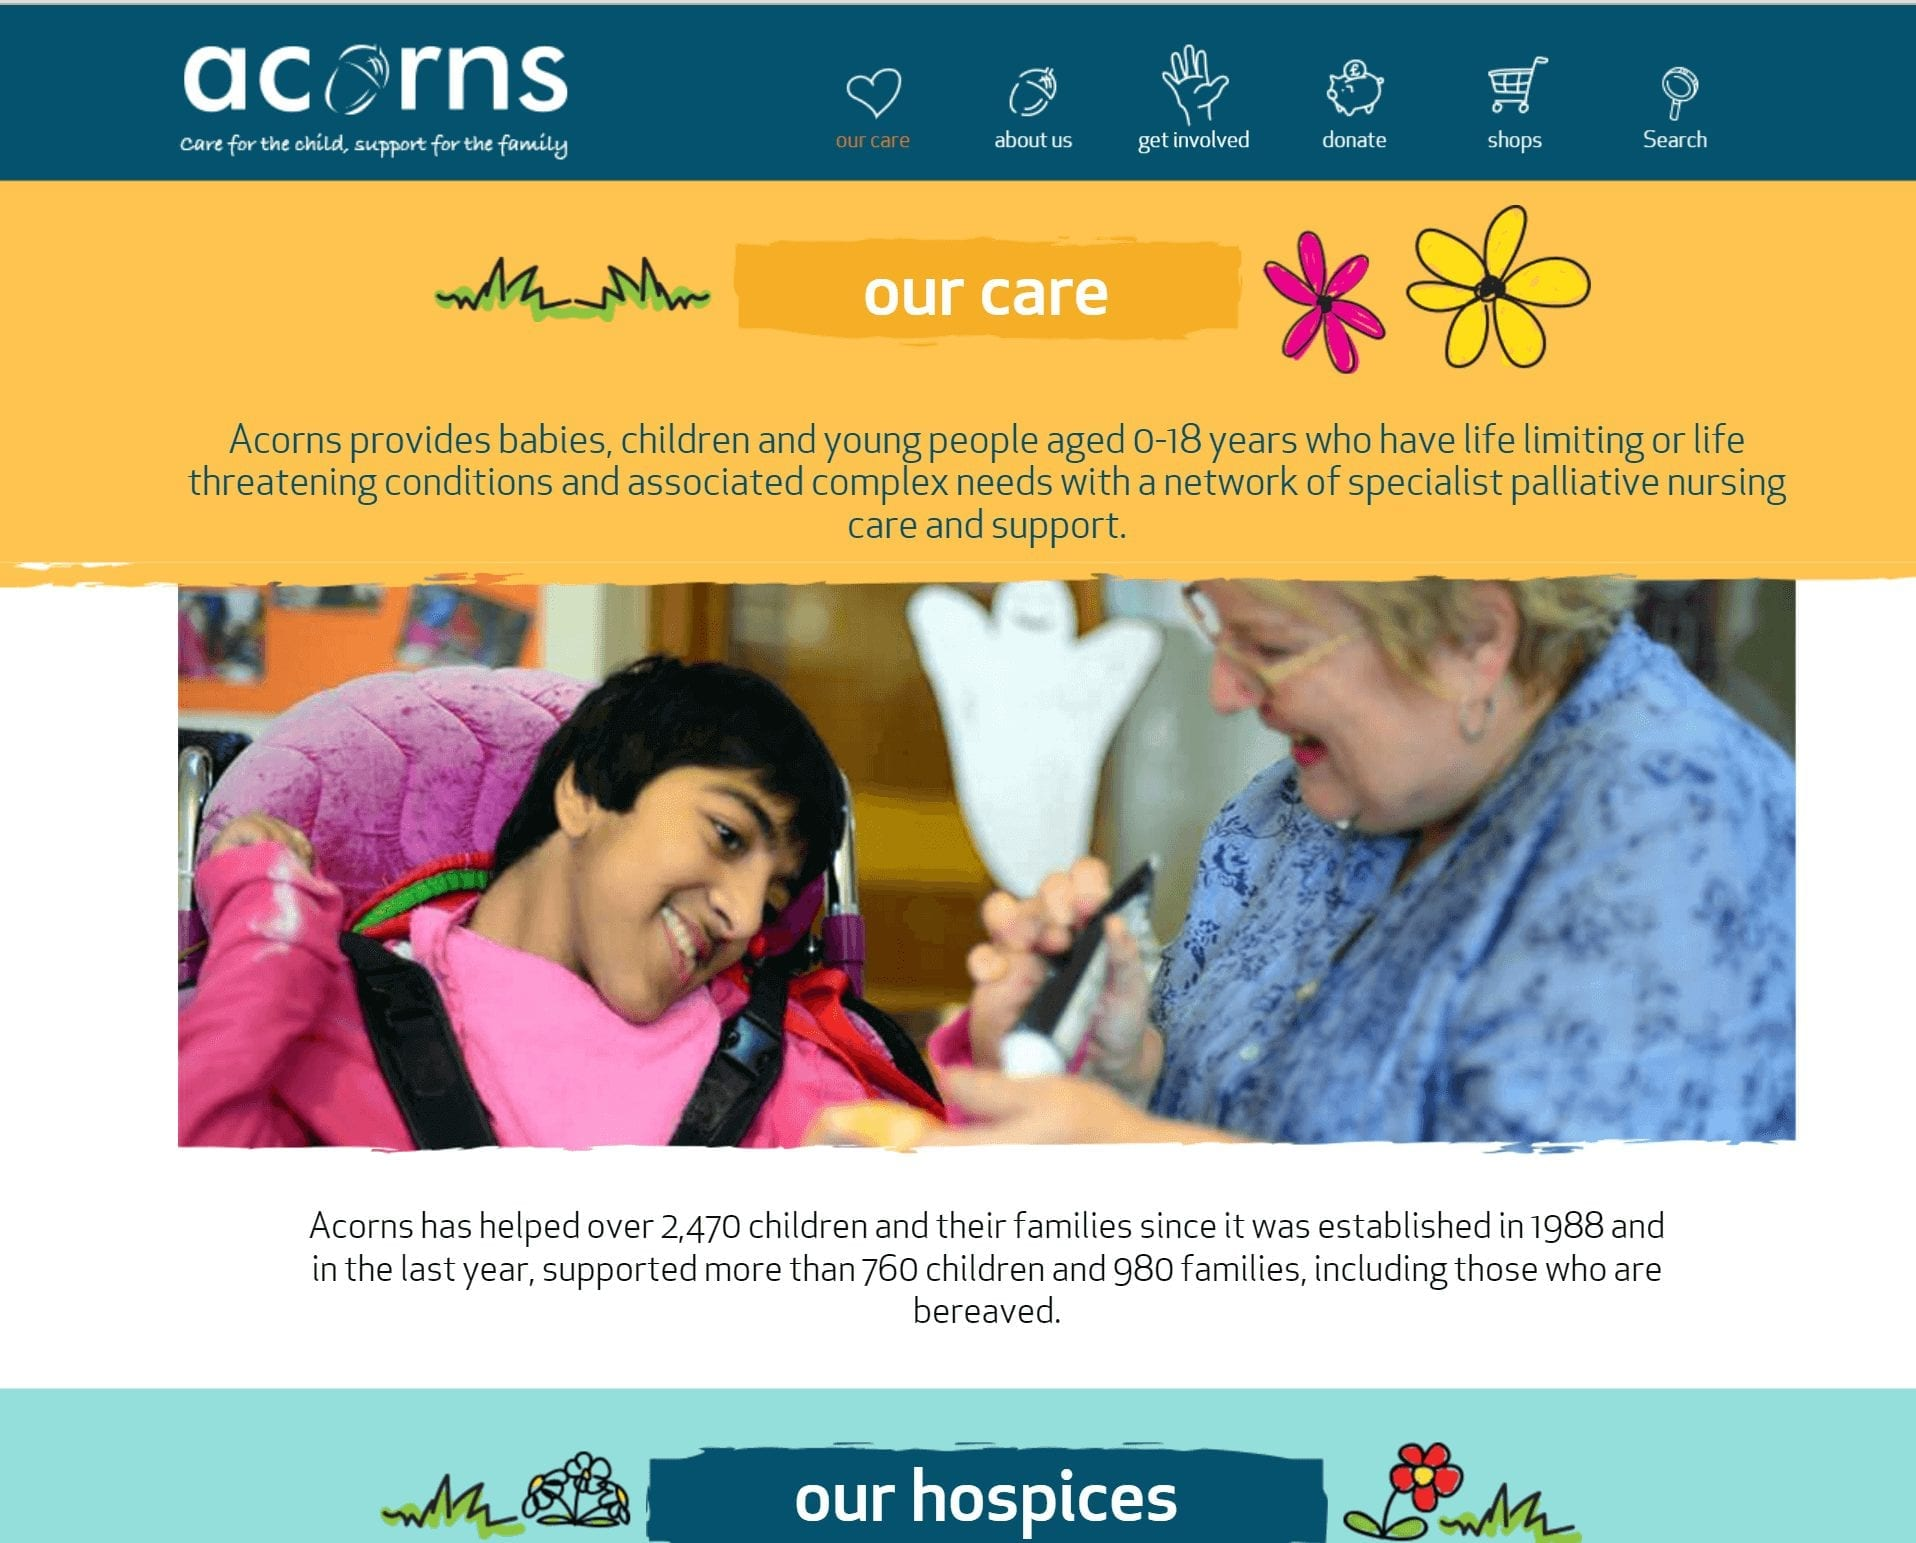 Acorns our care page